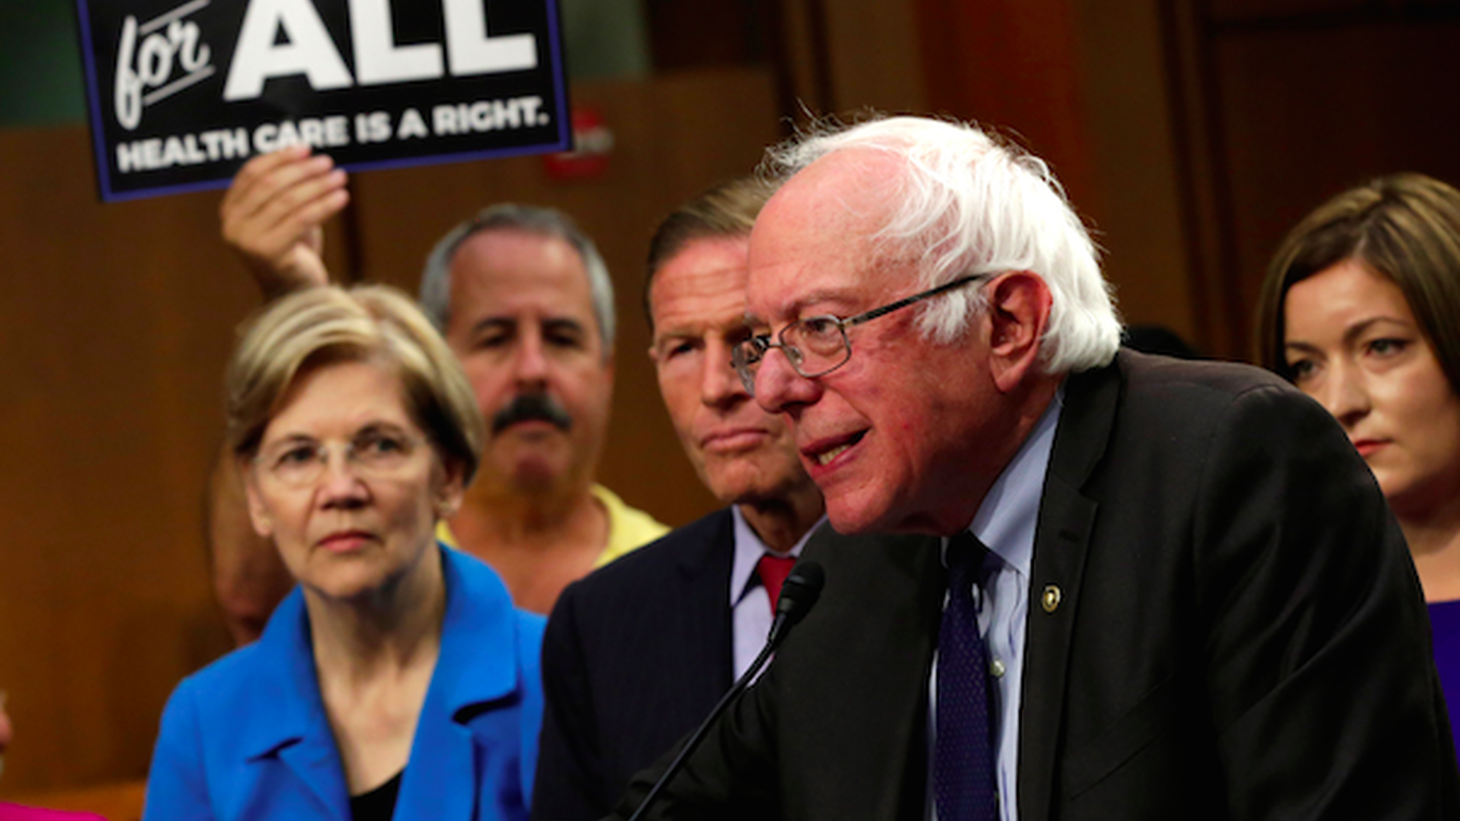 Republicans are trying one more time to repeal and replace Obamacare. Bernie Sanders is proposing a single payer bill. Will either of these bills become law?